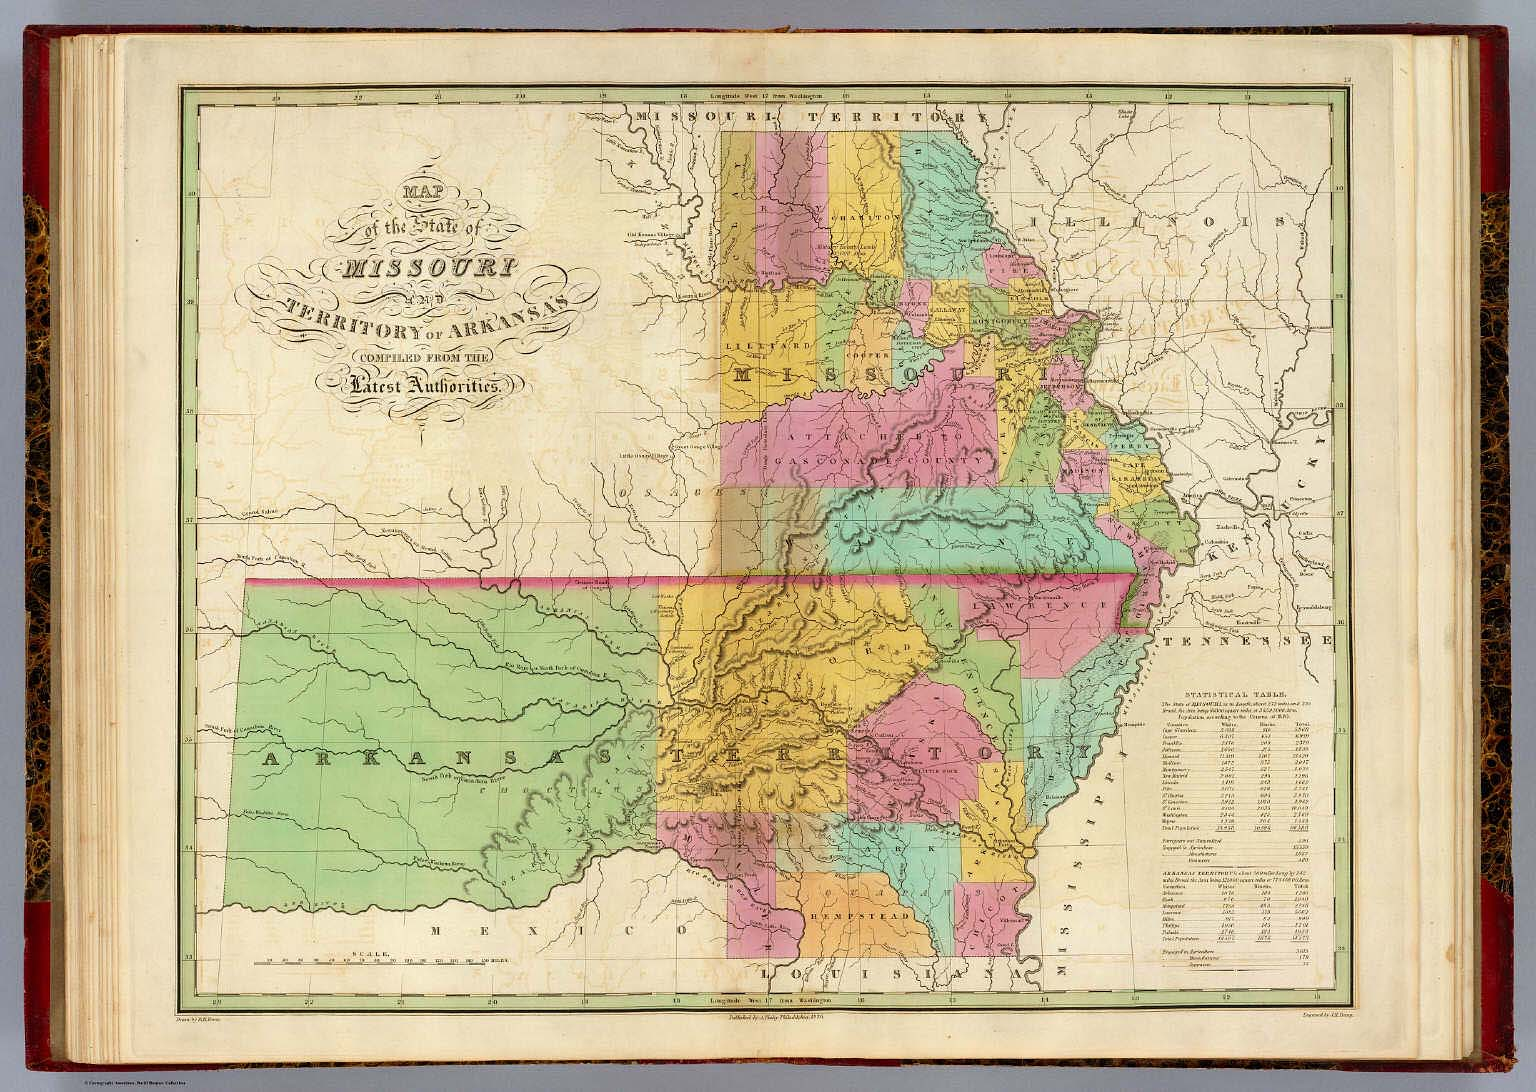 Of The State Of Missouri And Territory Of Arkansas Finley - State of missouri map